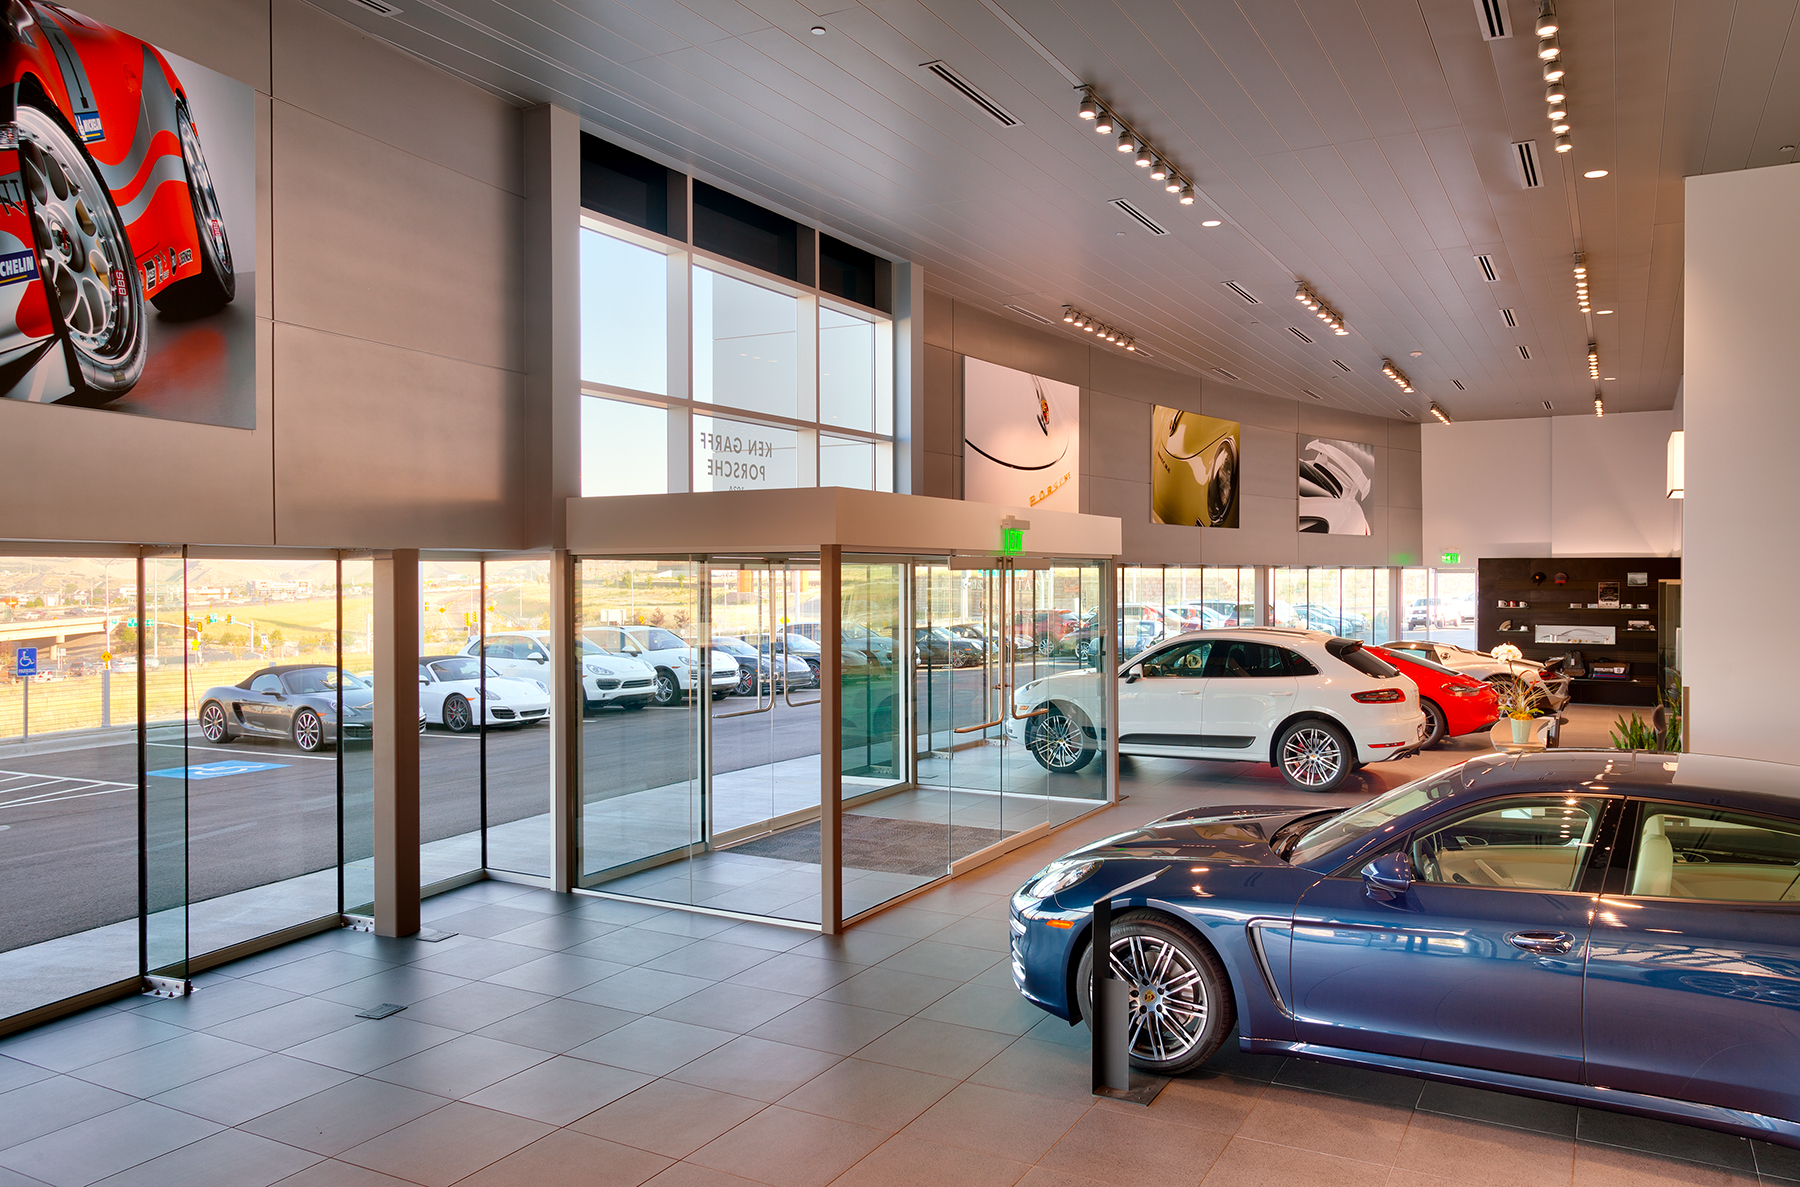 Automotive-Architect-Utah-Ken-Garff-Audi-Porsche-Lehi